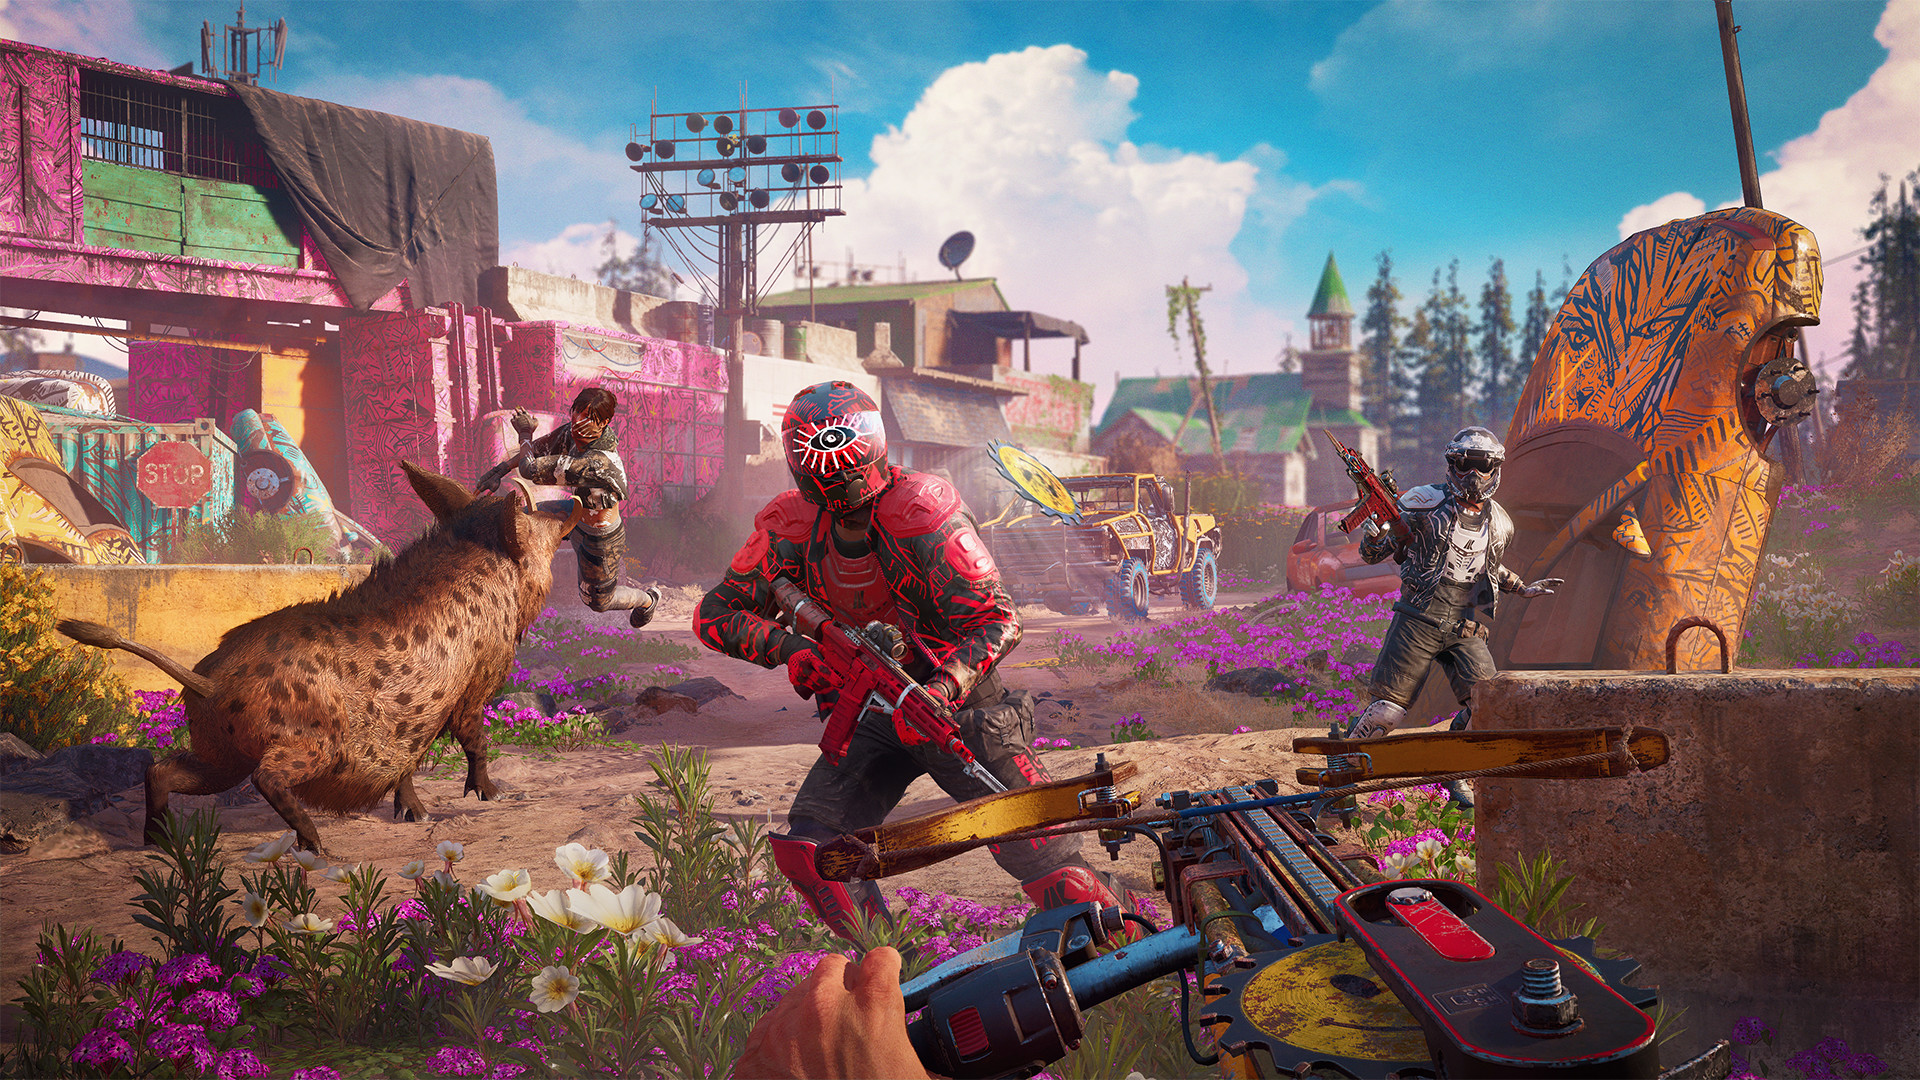 Far Cry New Dawn (Ubisoft) (RUS|ENG|MULTi) [UplayRip] by vano_next